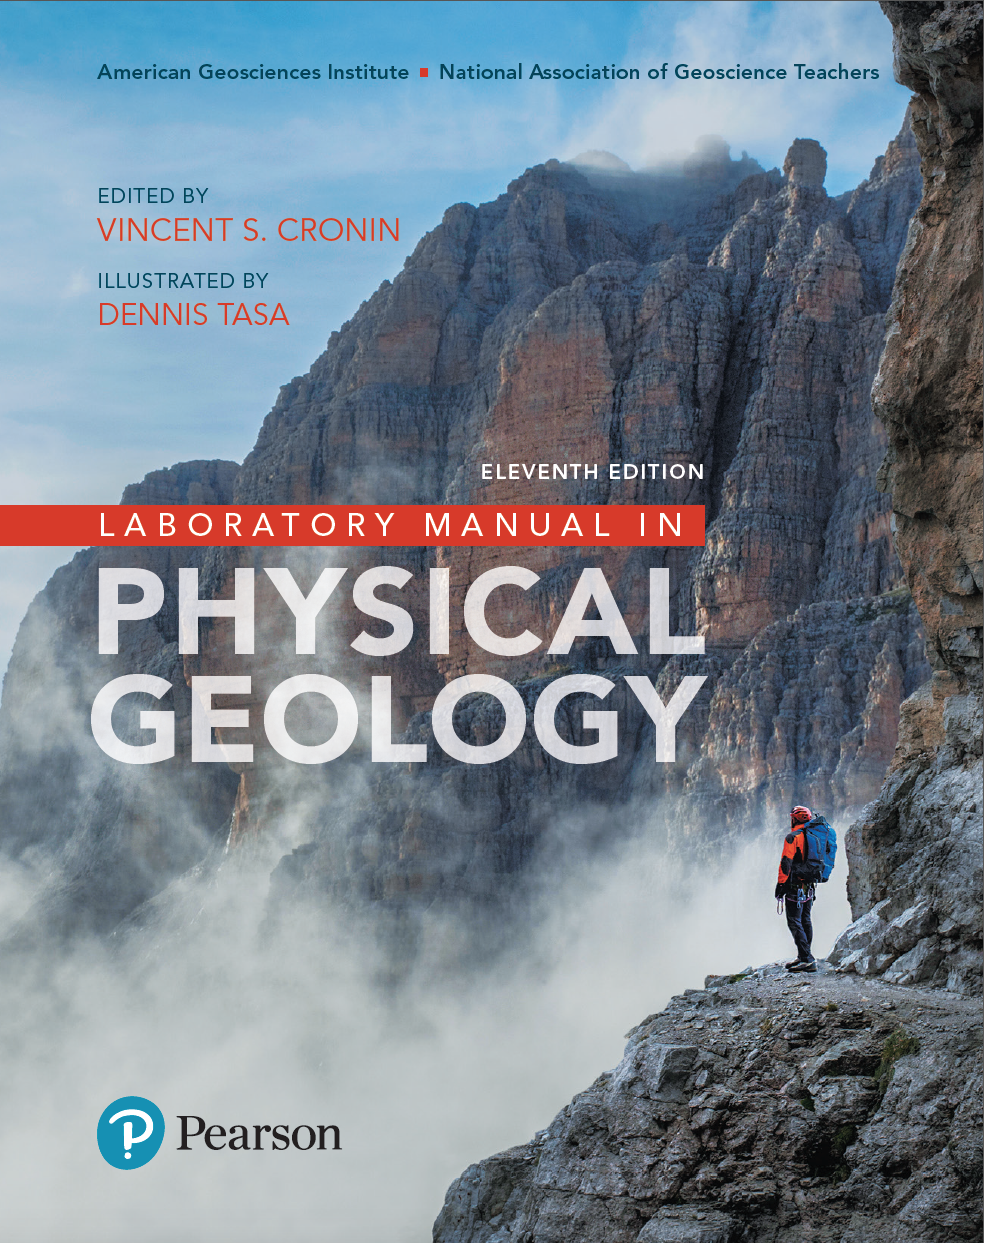 Pearson-Physical Geology.png